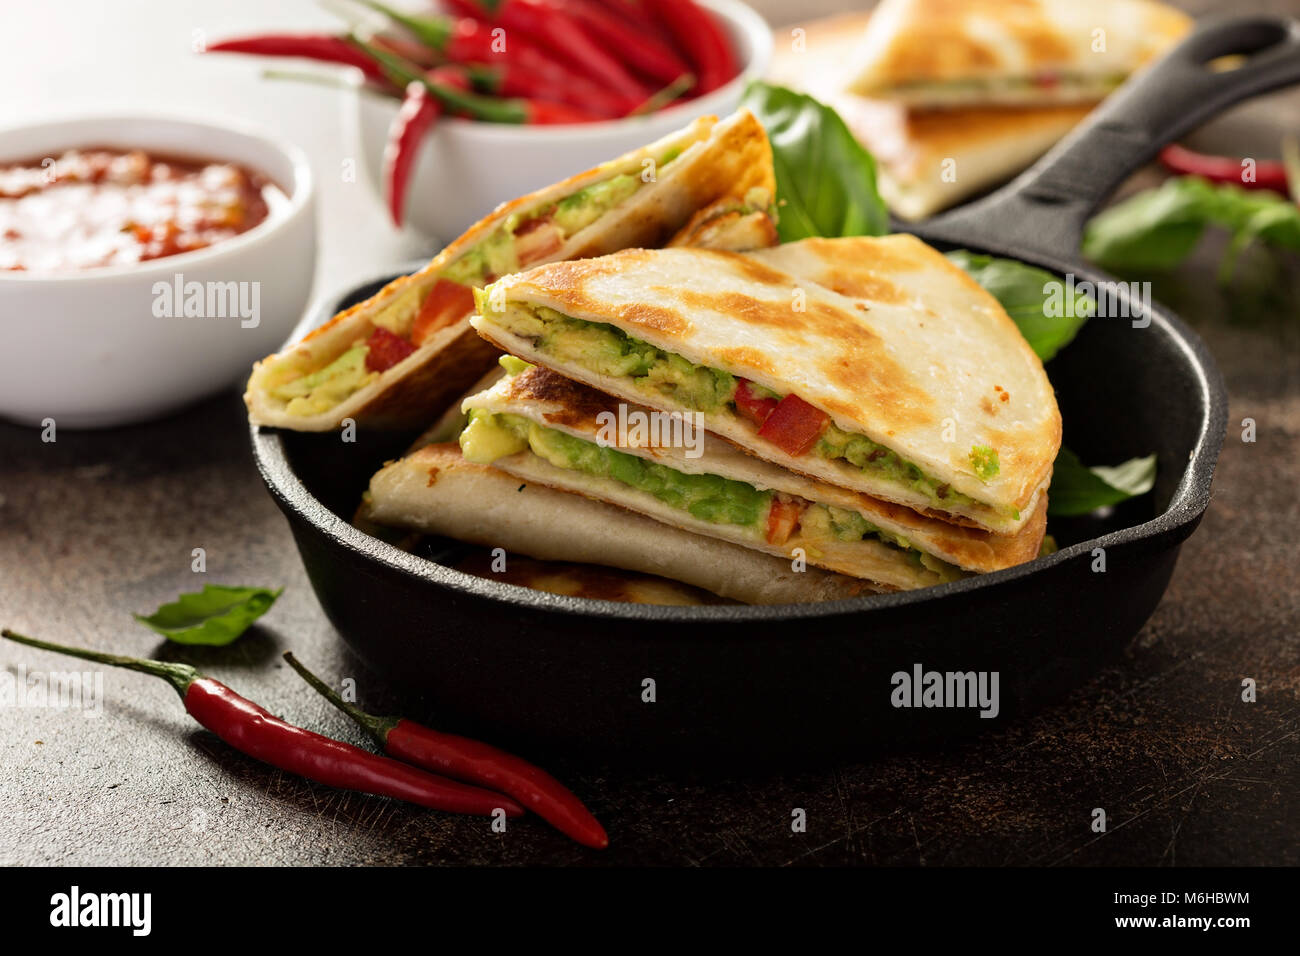 Vegan quesadillas with avocado and red peppers - Stock Image